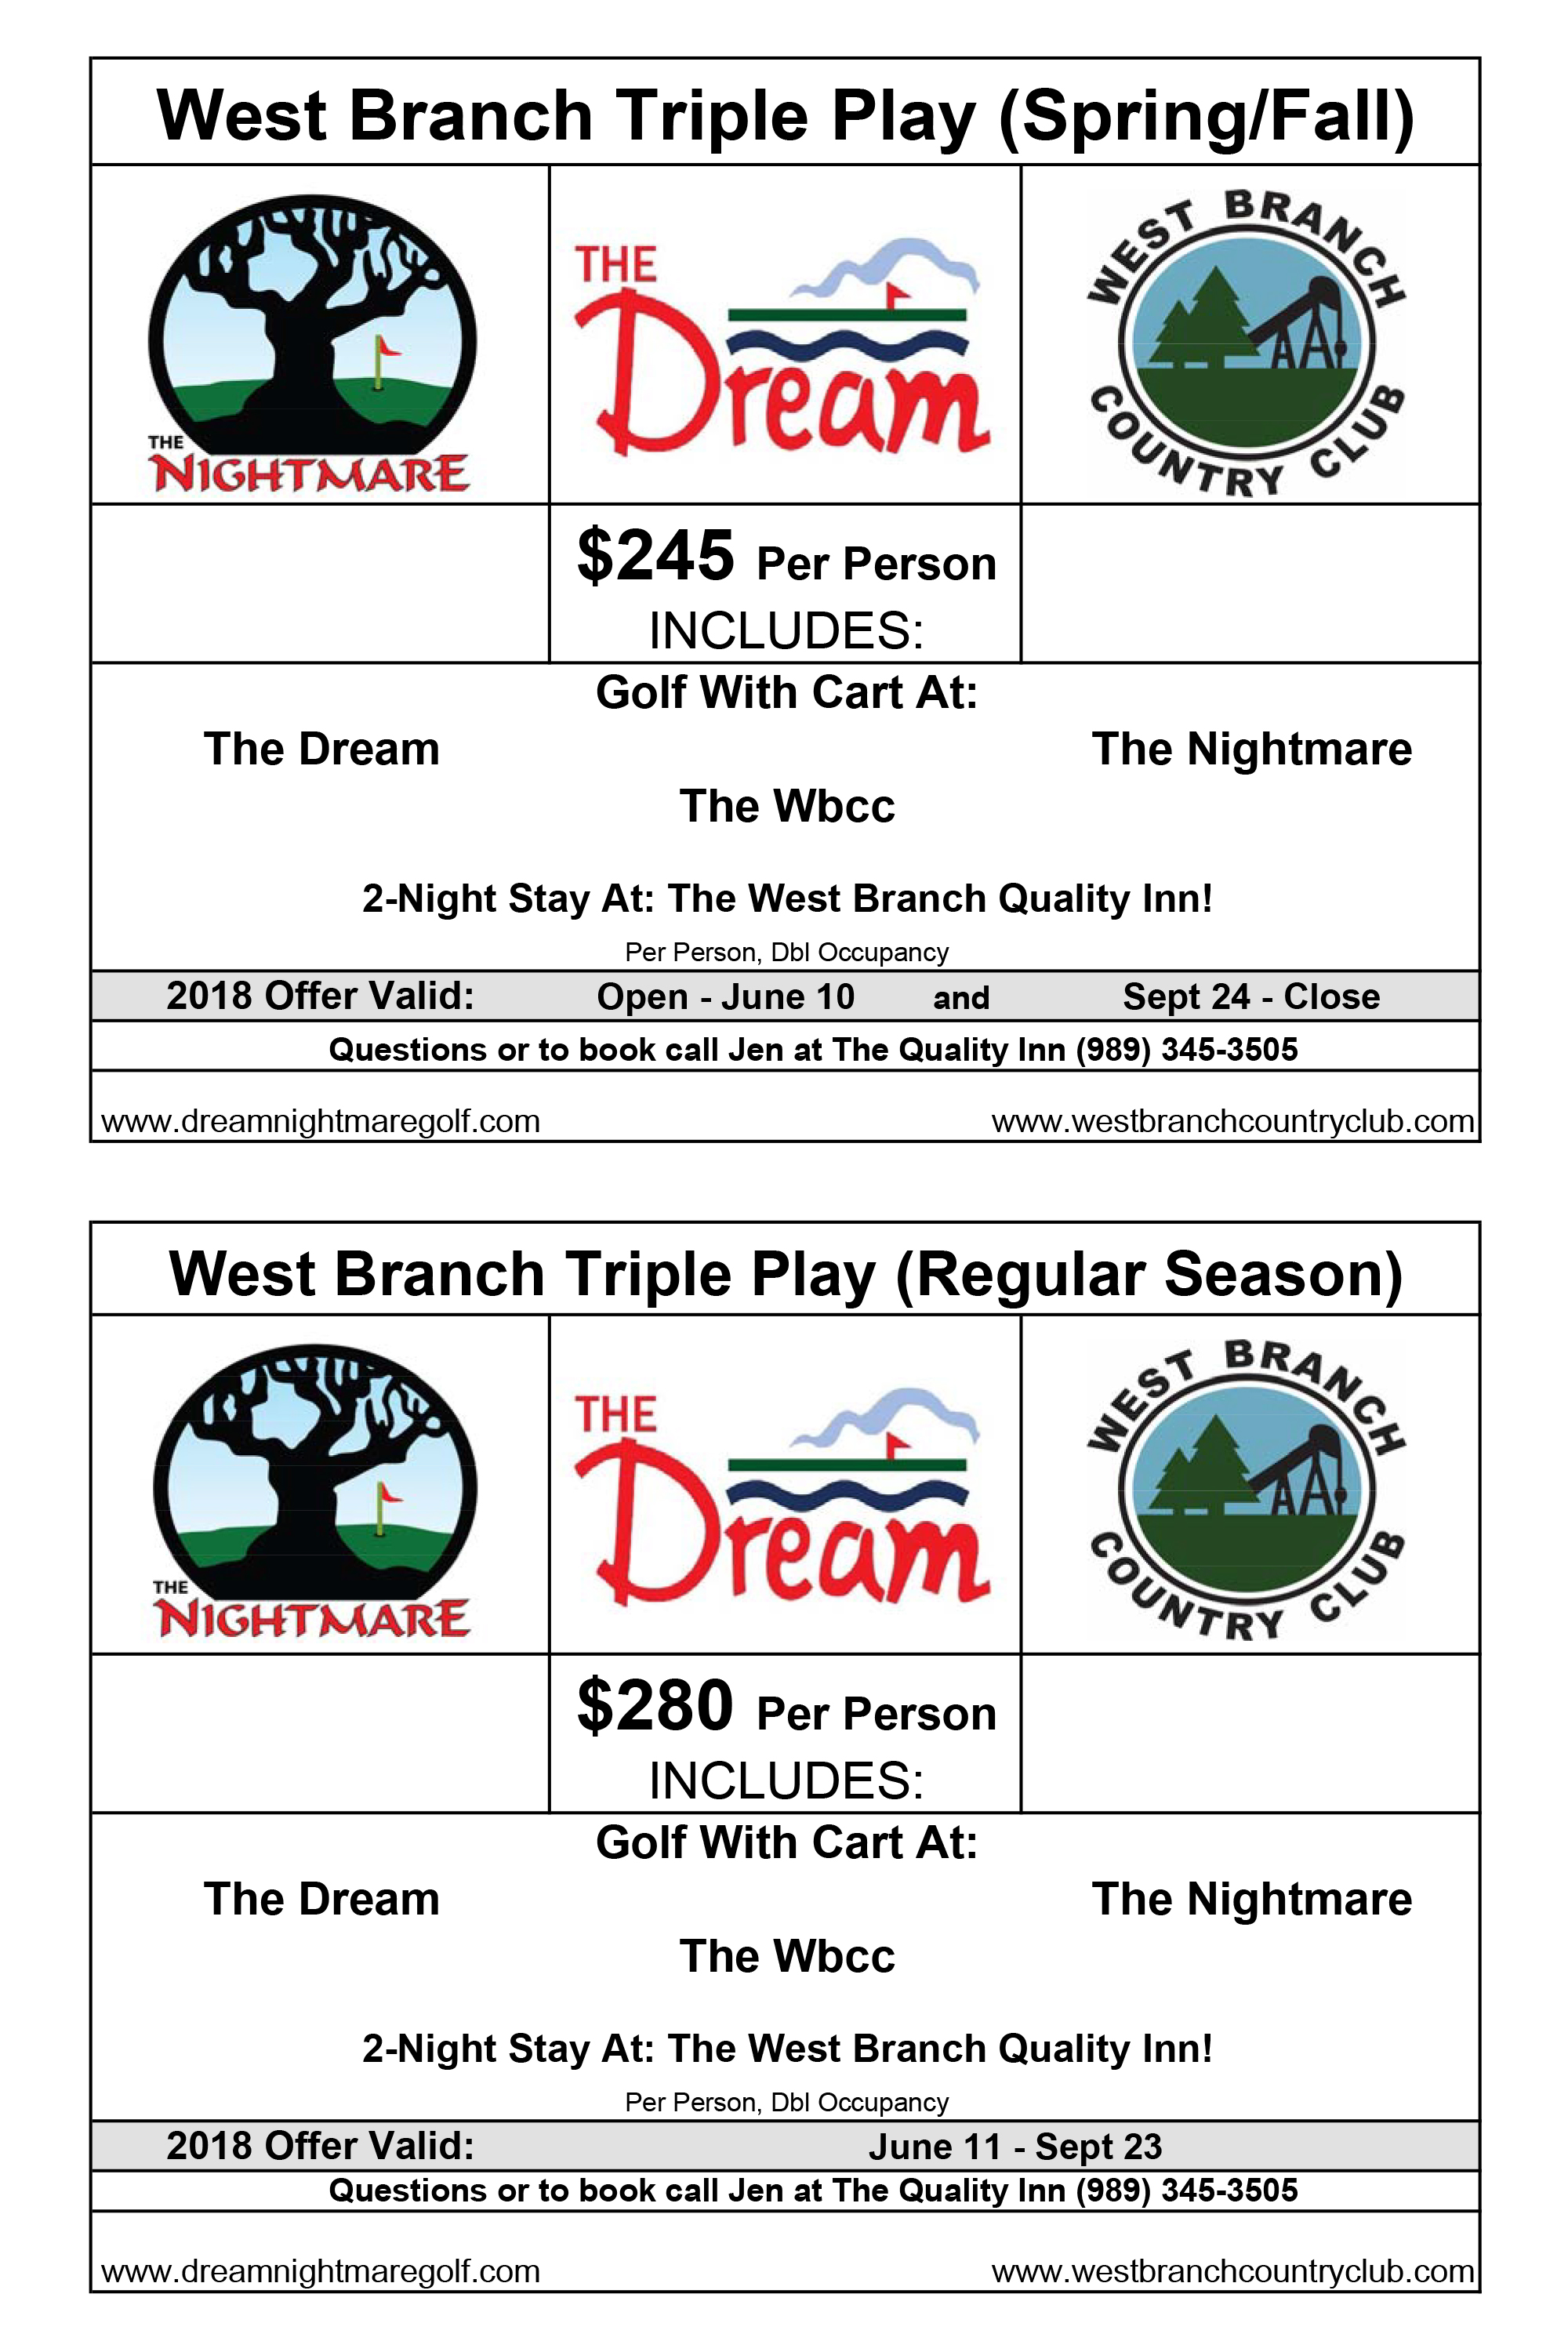 West Branch Country Club Triple Play 2018